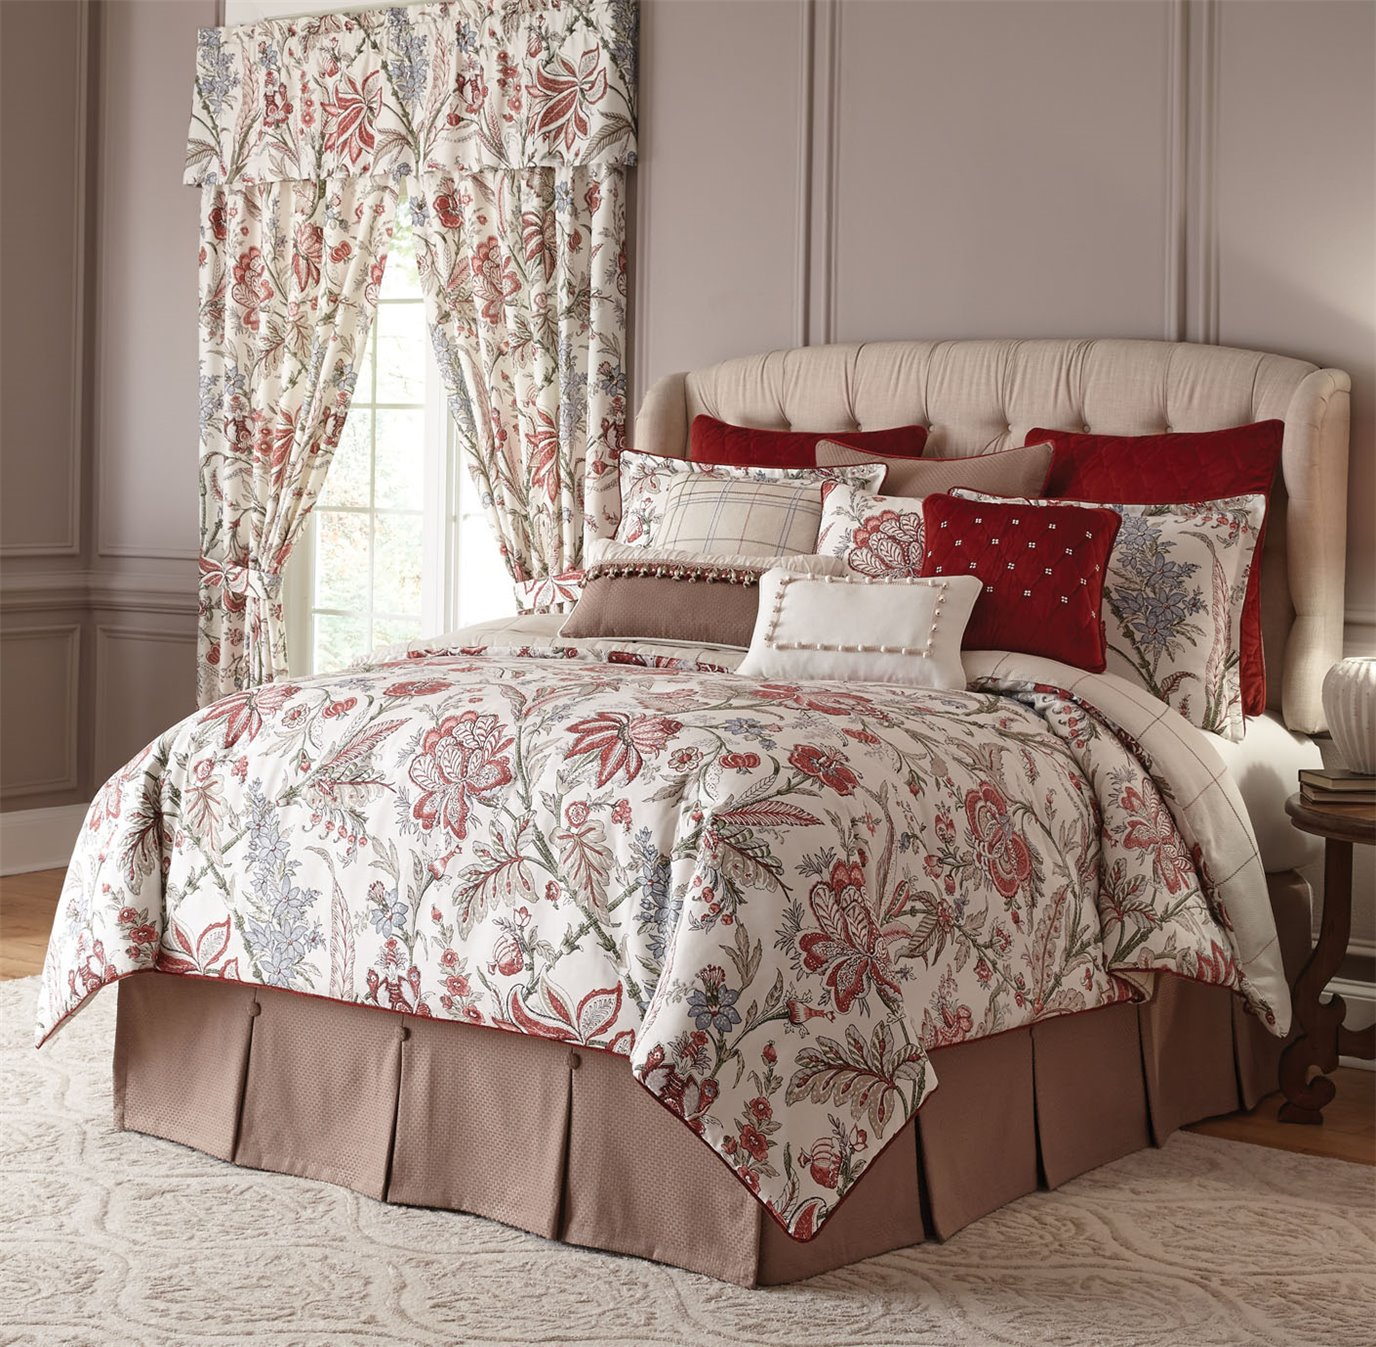 Izabelle 4 Piece Queen Comforter Set